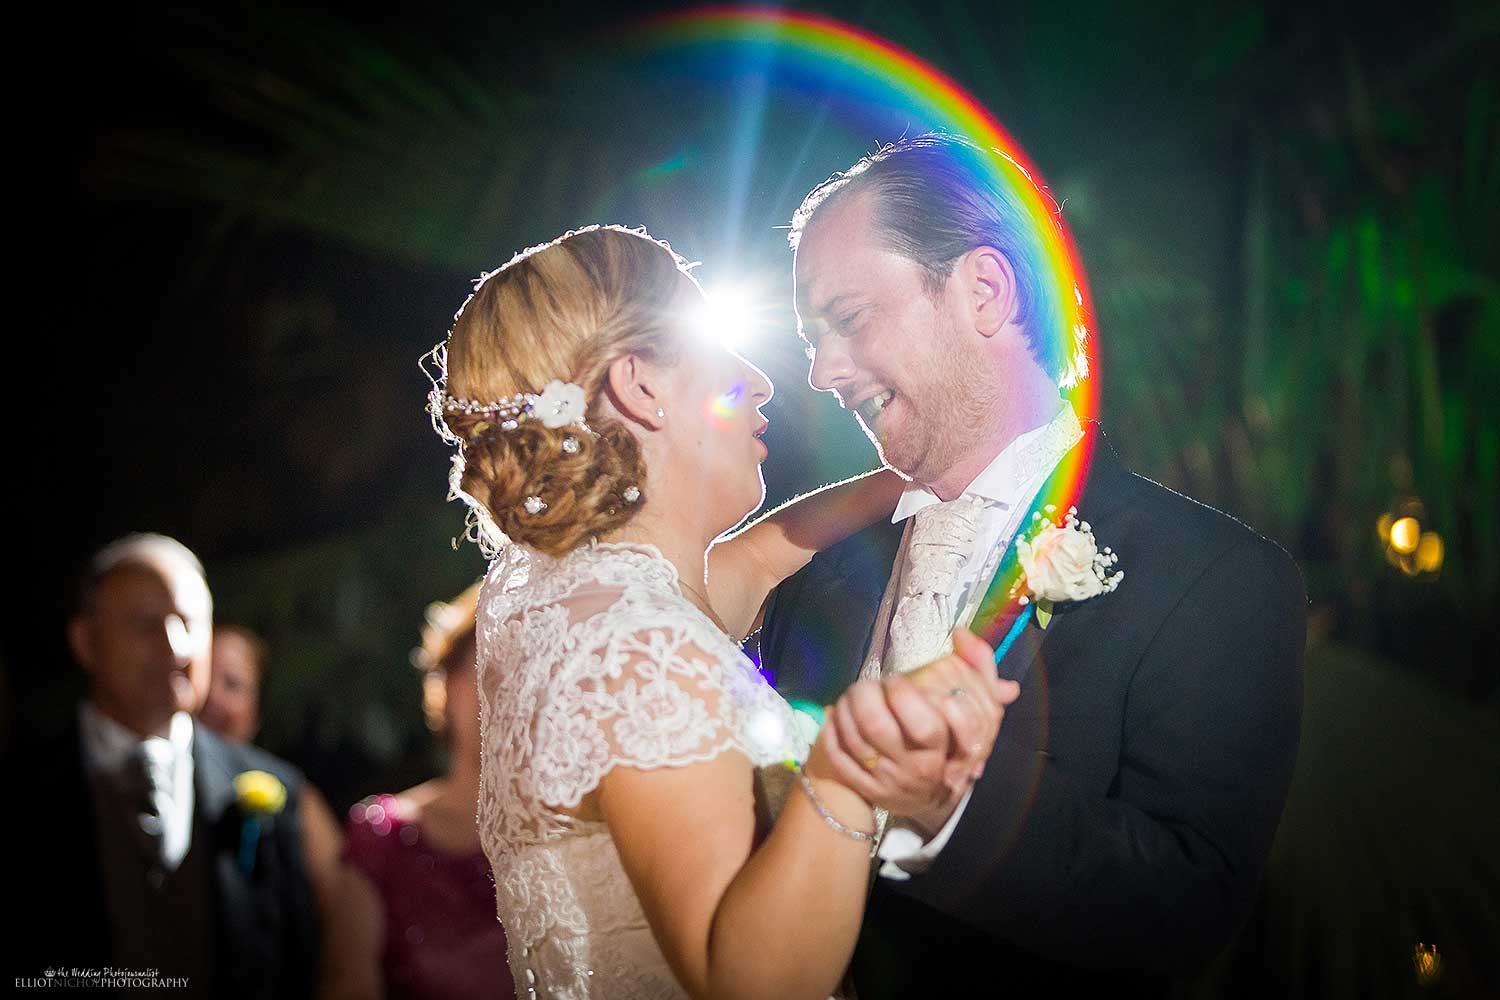 newlyweds-dance-wedding-party-photography